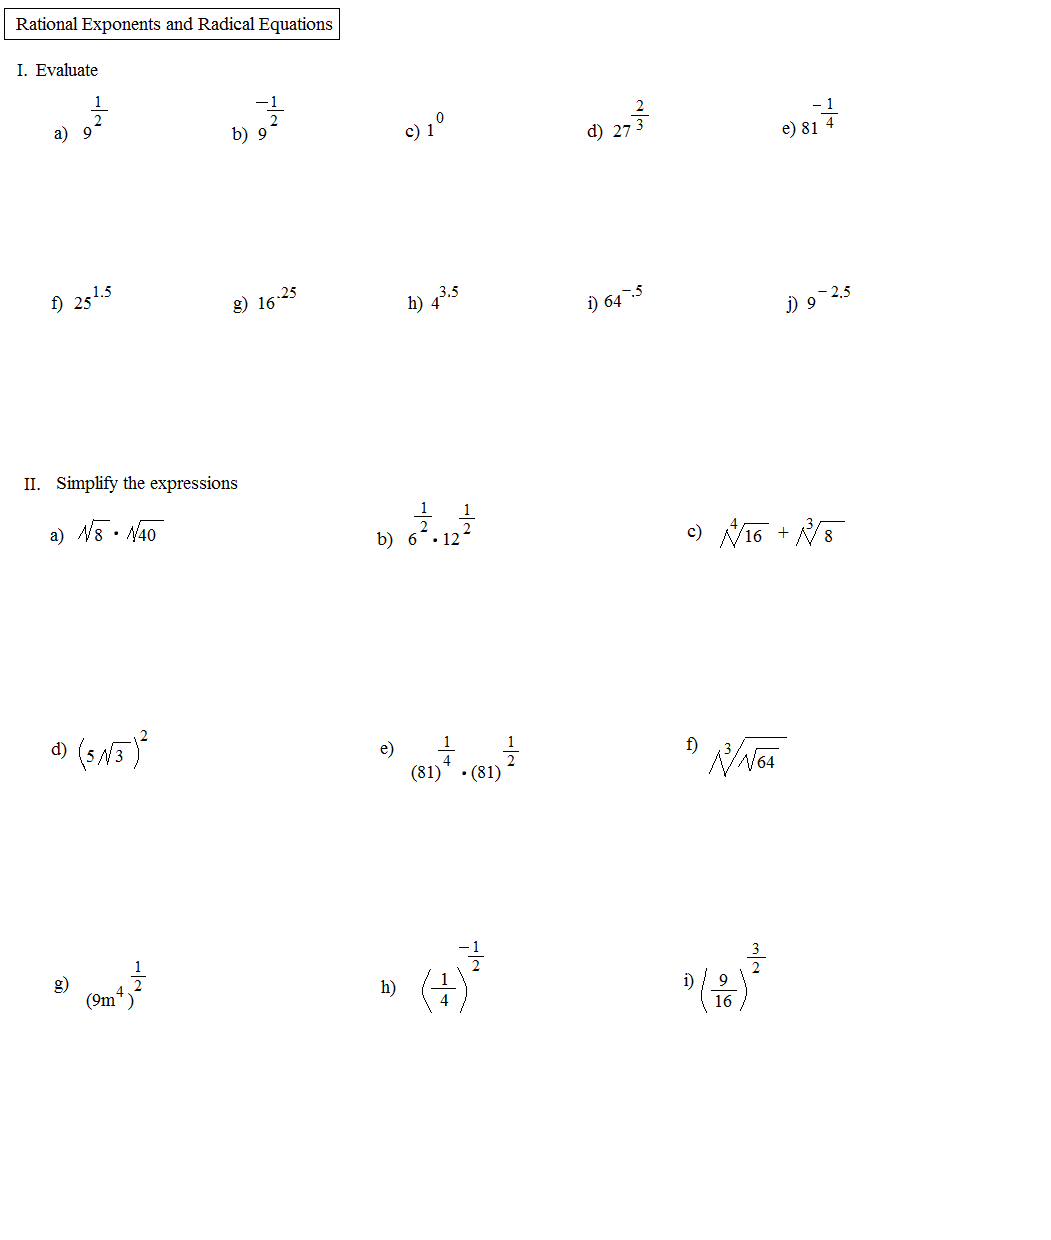 Printables Rational Exponent Worksheet fractional exponents worksheet precommunity printables worksheets math plane rational and radical equations exercise